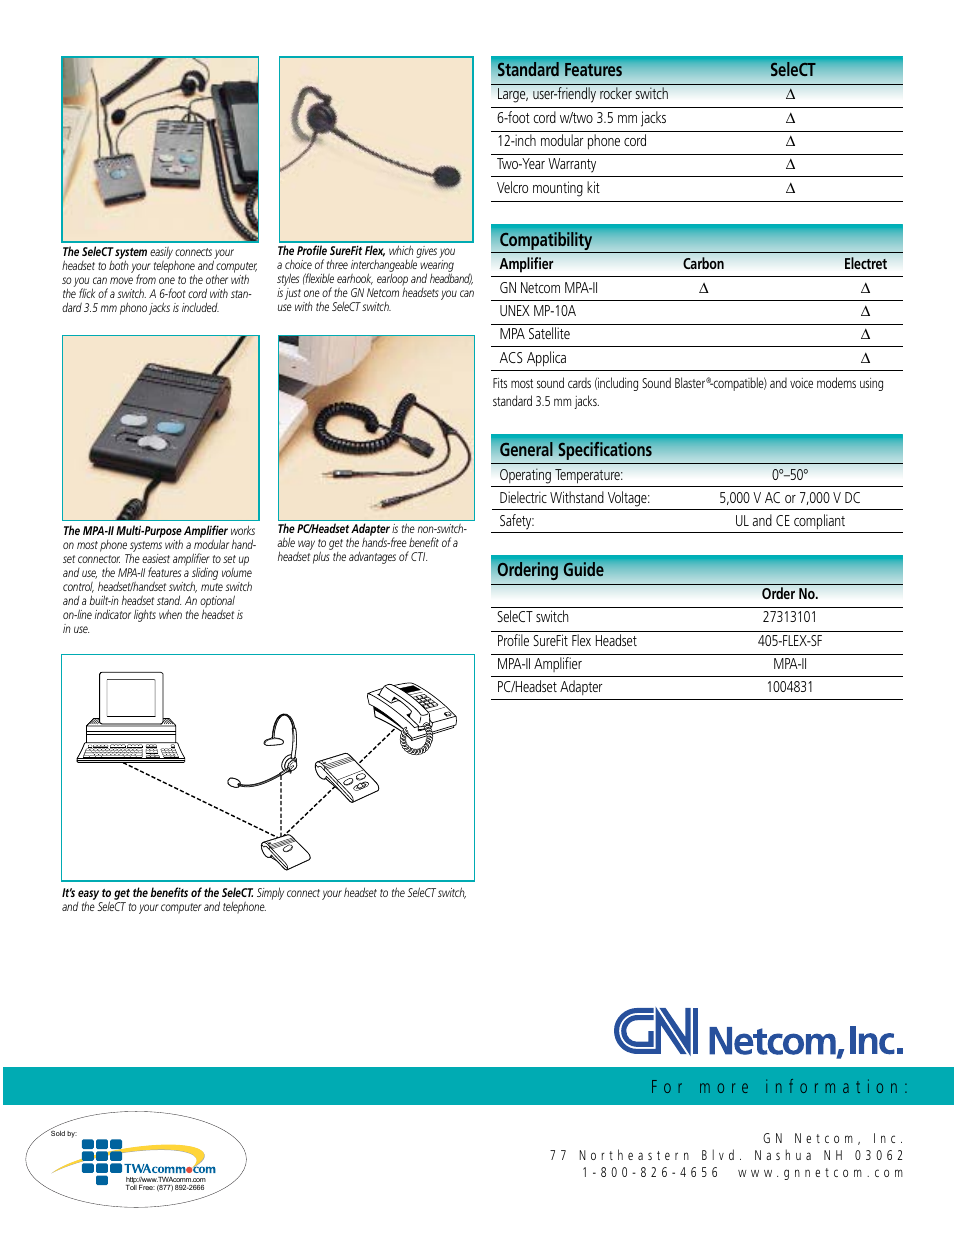 Compatibility, Standard features select, Ordering guide | GN Netcom  ONE-CLICK COMPUTER-TELEPHONY SWITCH User Manual | Page 2 / 2